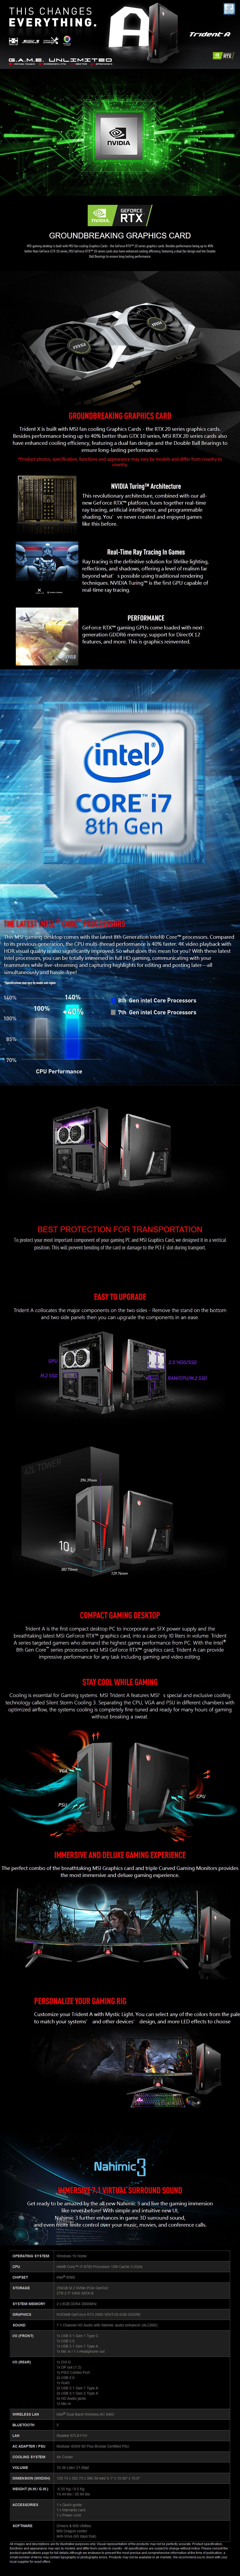 MSI Trident A Compact Gaming PC i7-8700 16GB 2TB+256GB RTX 2060 Win10H - Overview 1